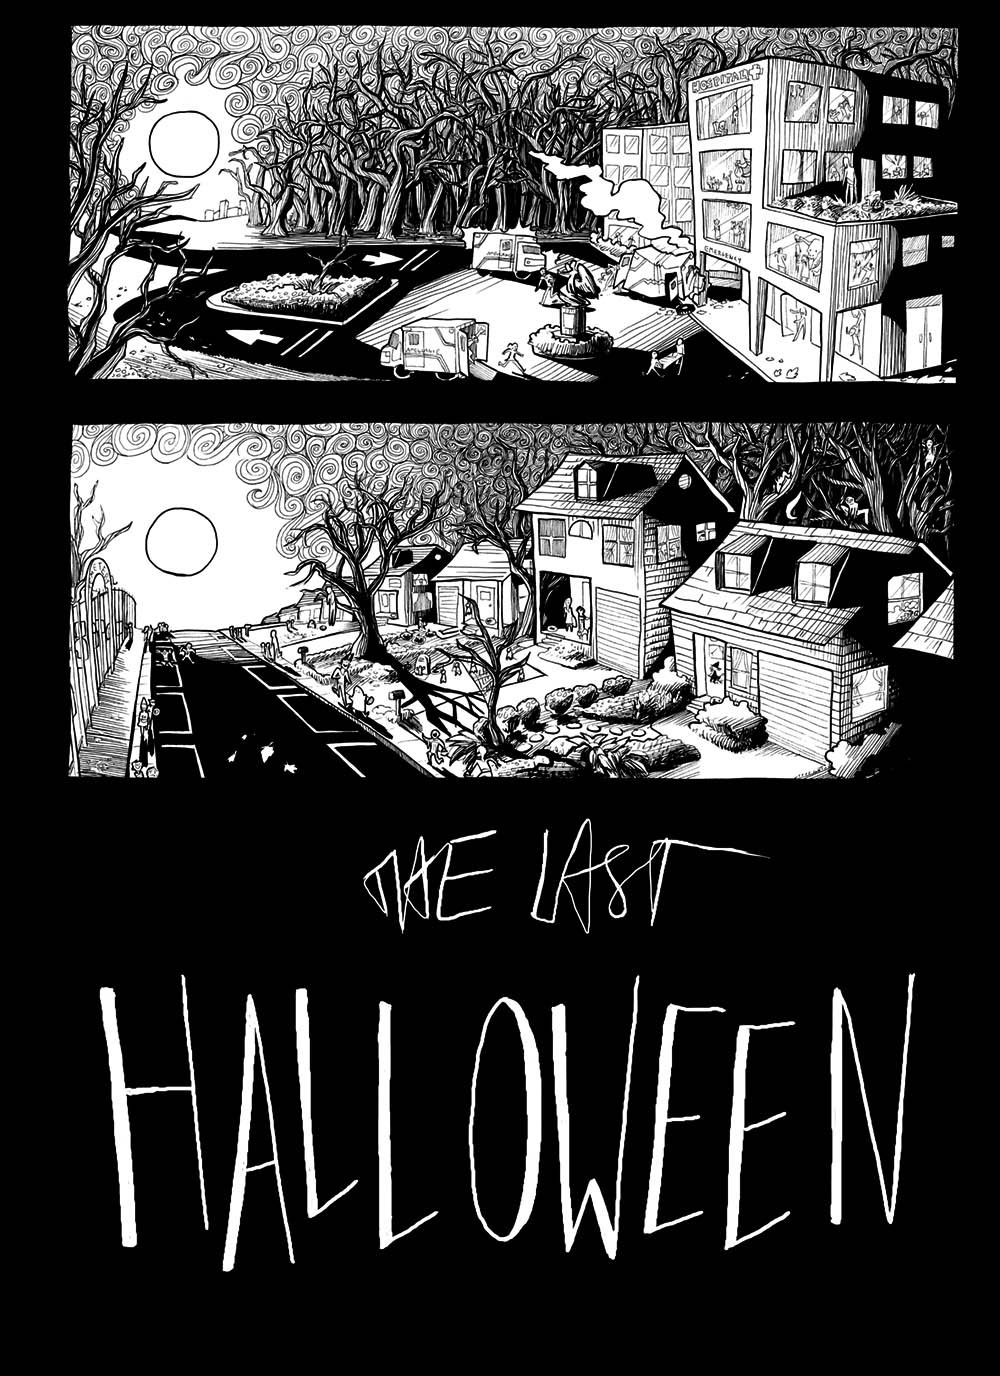 The Last Halloween is the story of Mona and her unusual friends ...